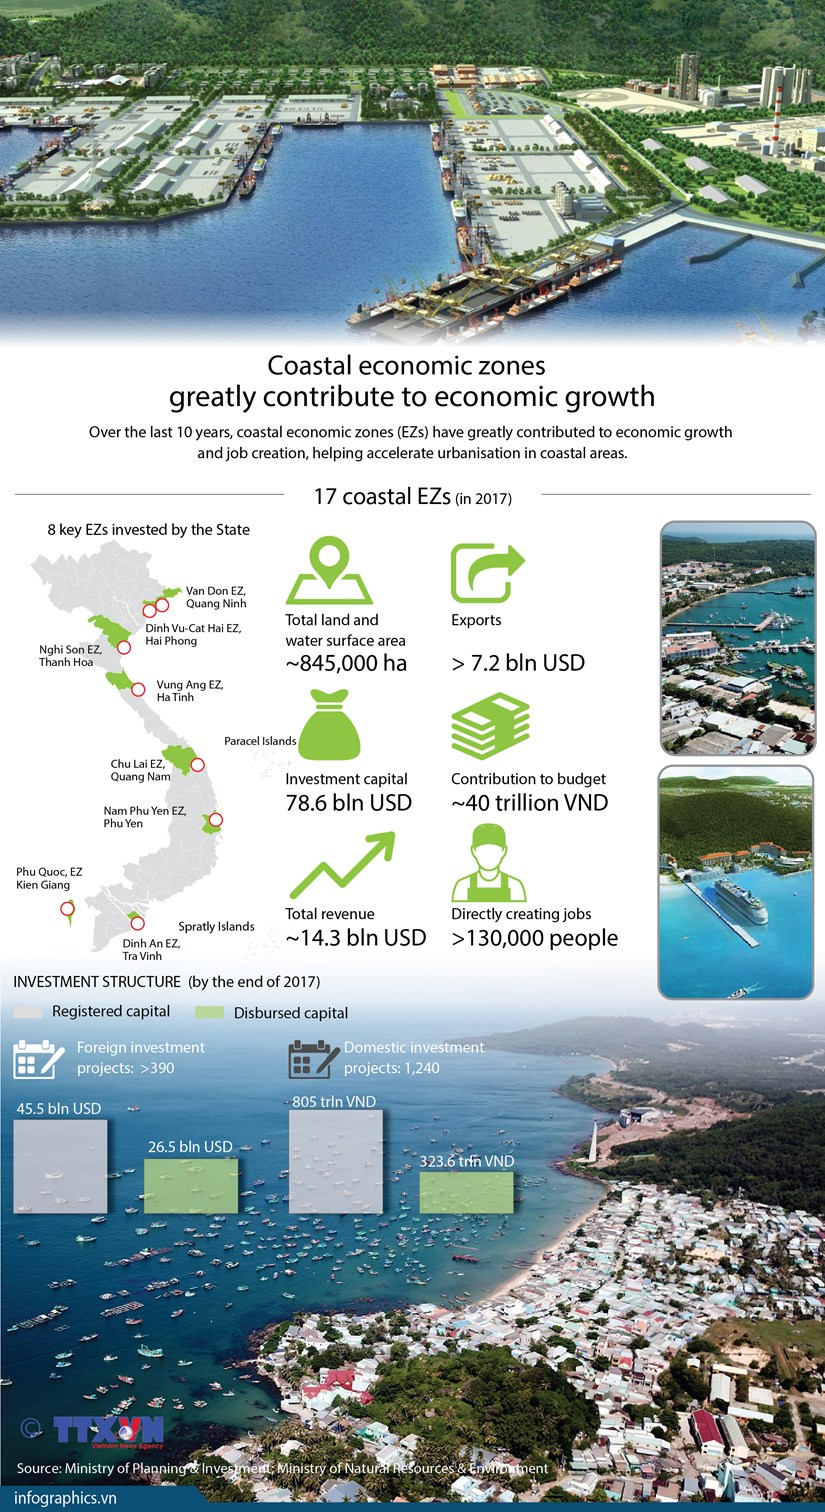 Coastal economic zones greatly contribute to economic growth hinh anh 1